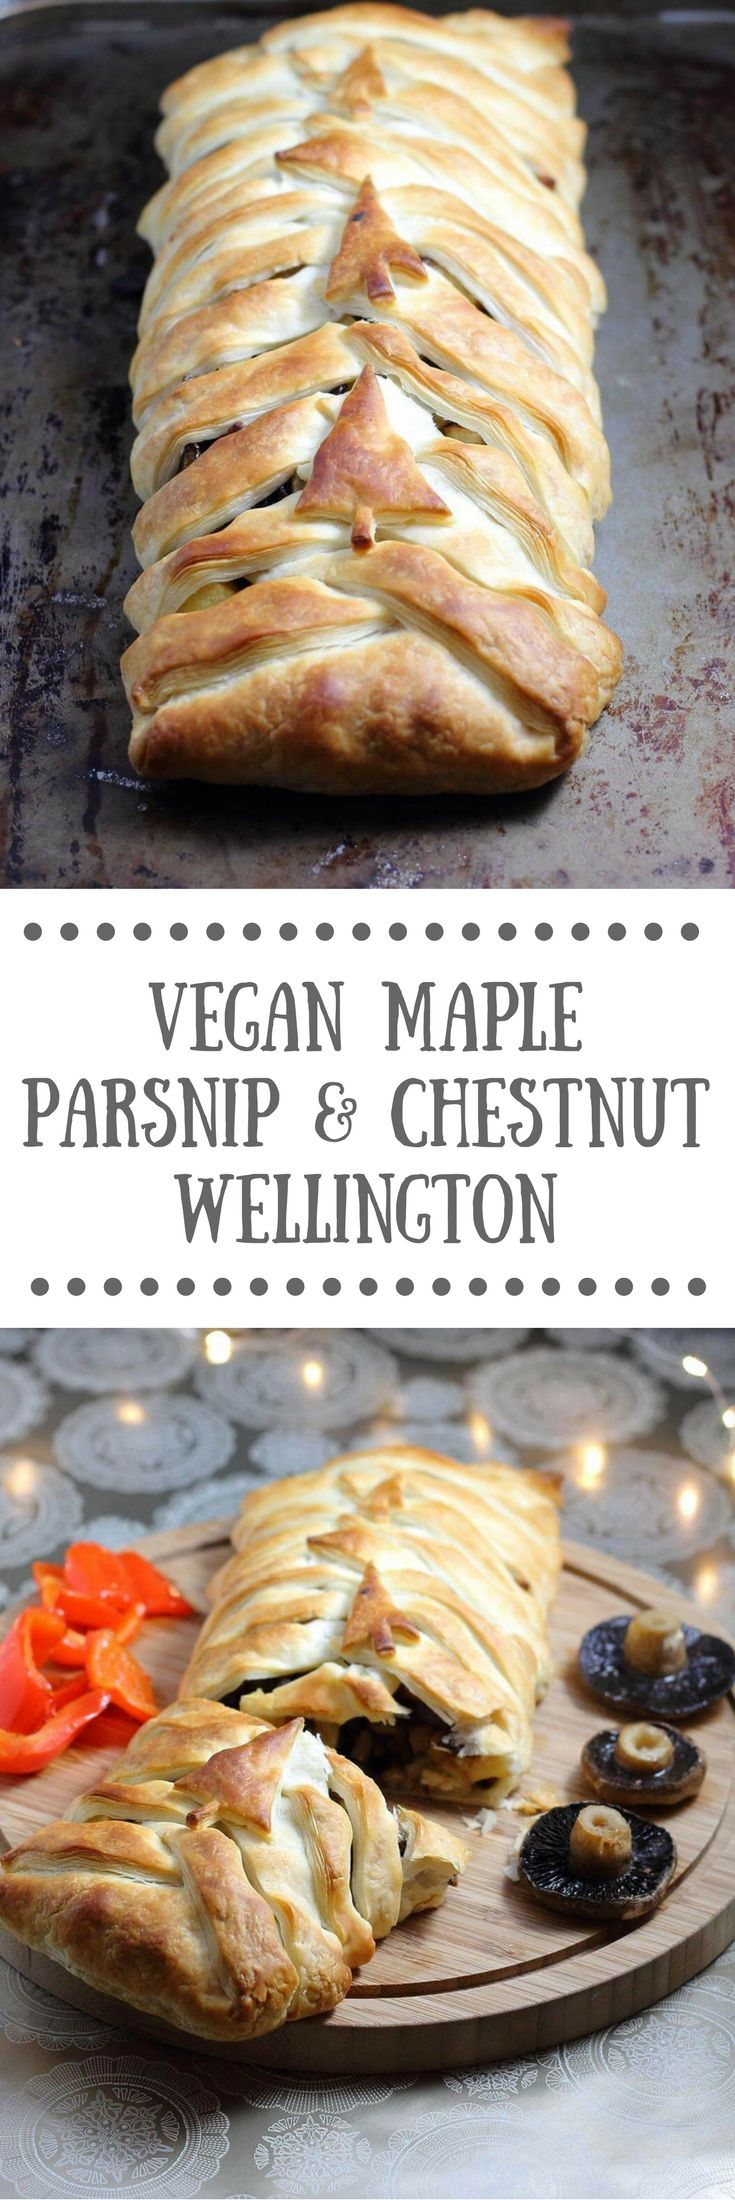 Vegan Maple Parsnip & Chestnut Wellington | A perfect vegan & dairy-free centrepiece for Christmas